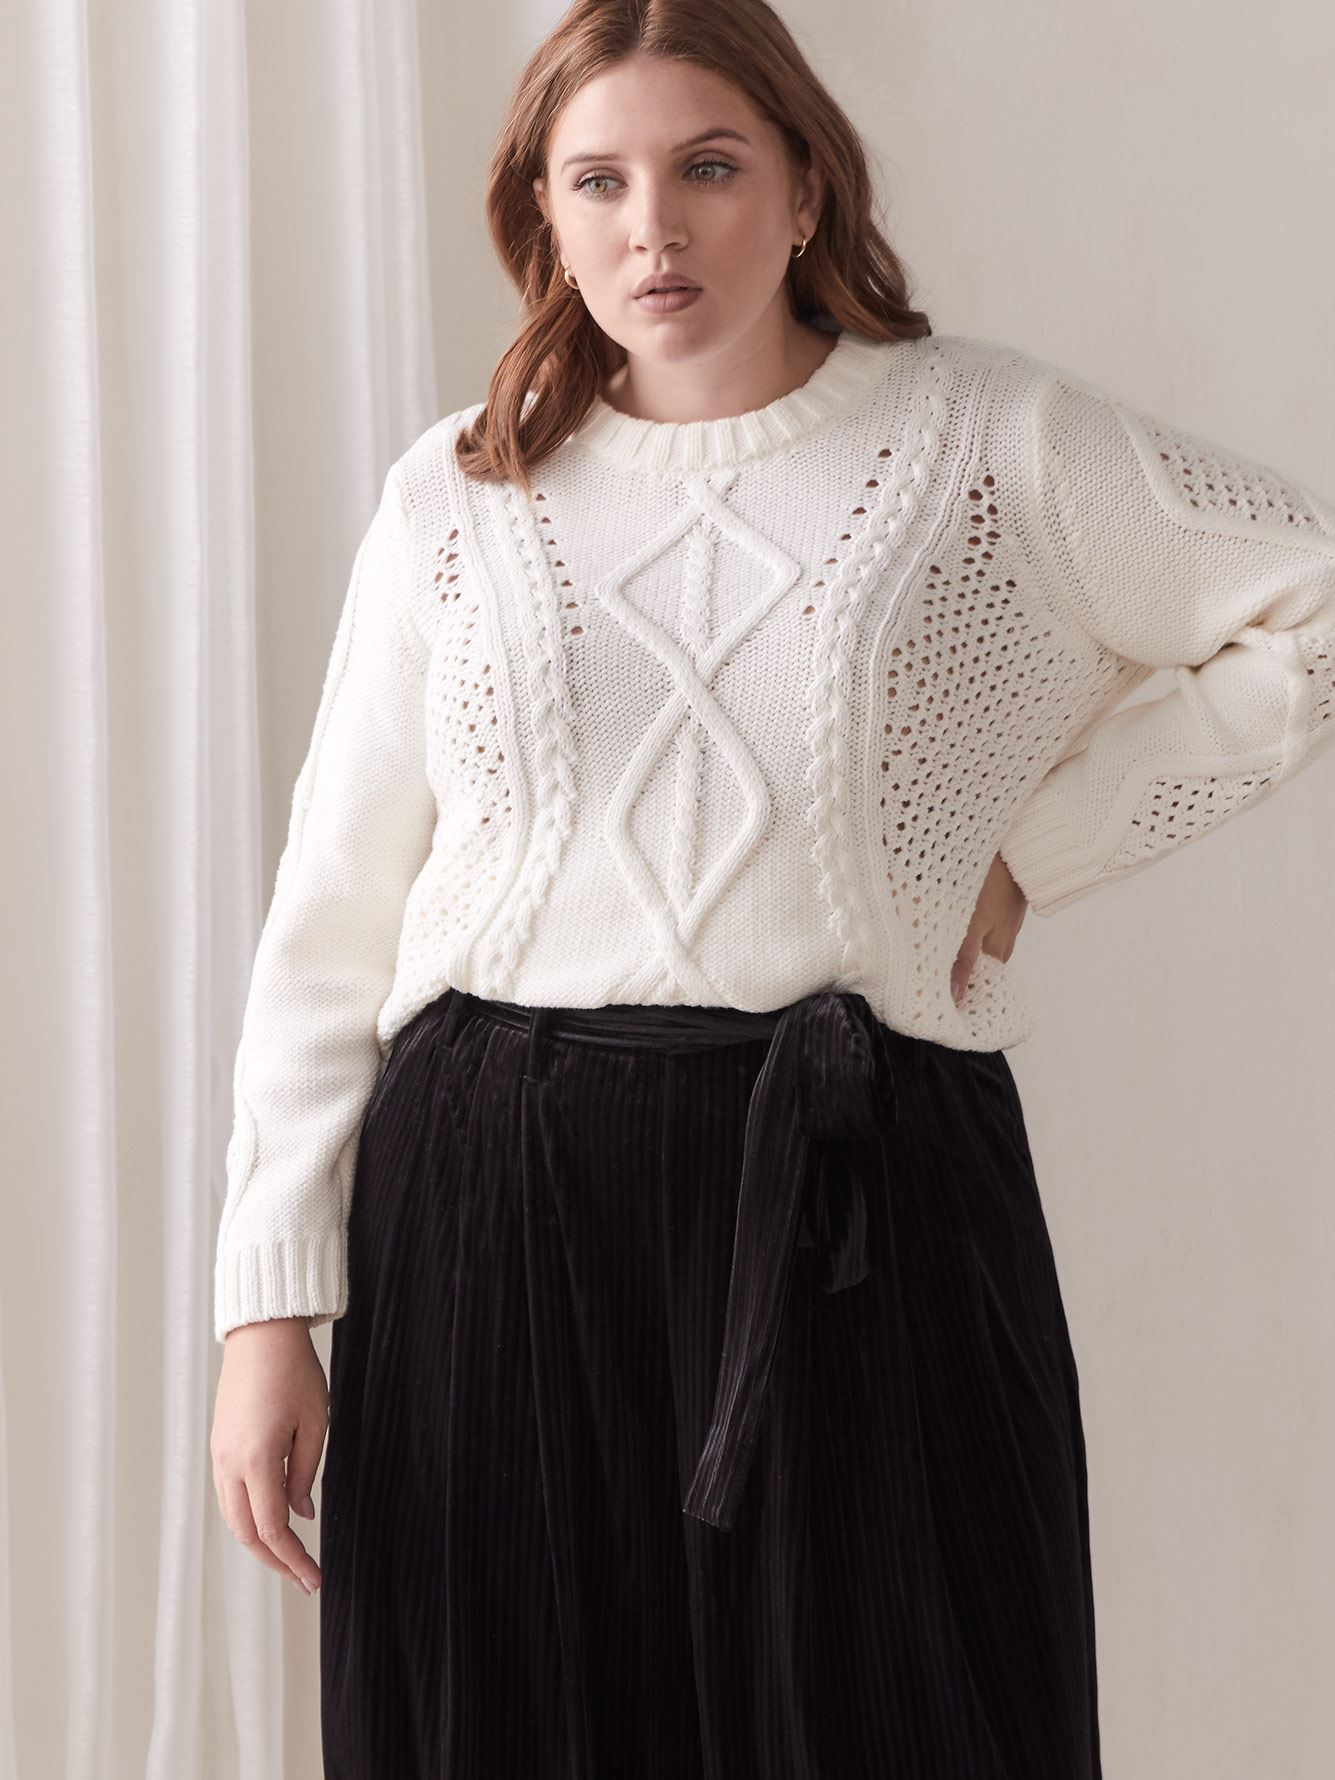 Adrina Cable-Knit Sweater - RACHEL Rachel Roy